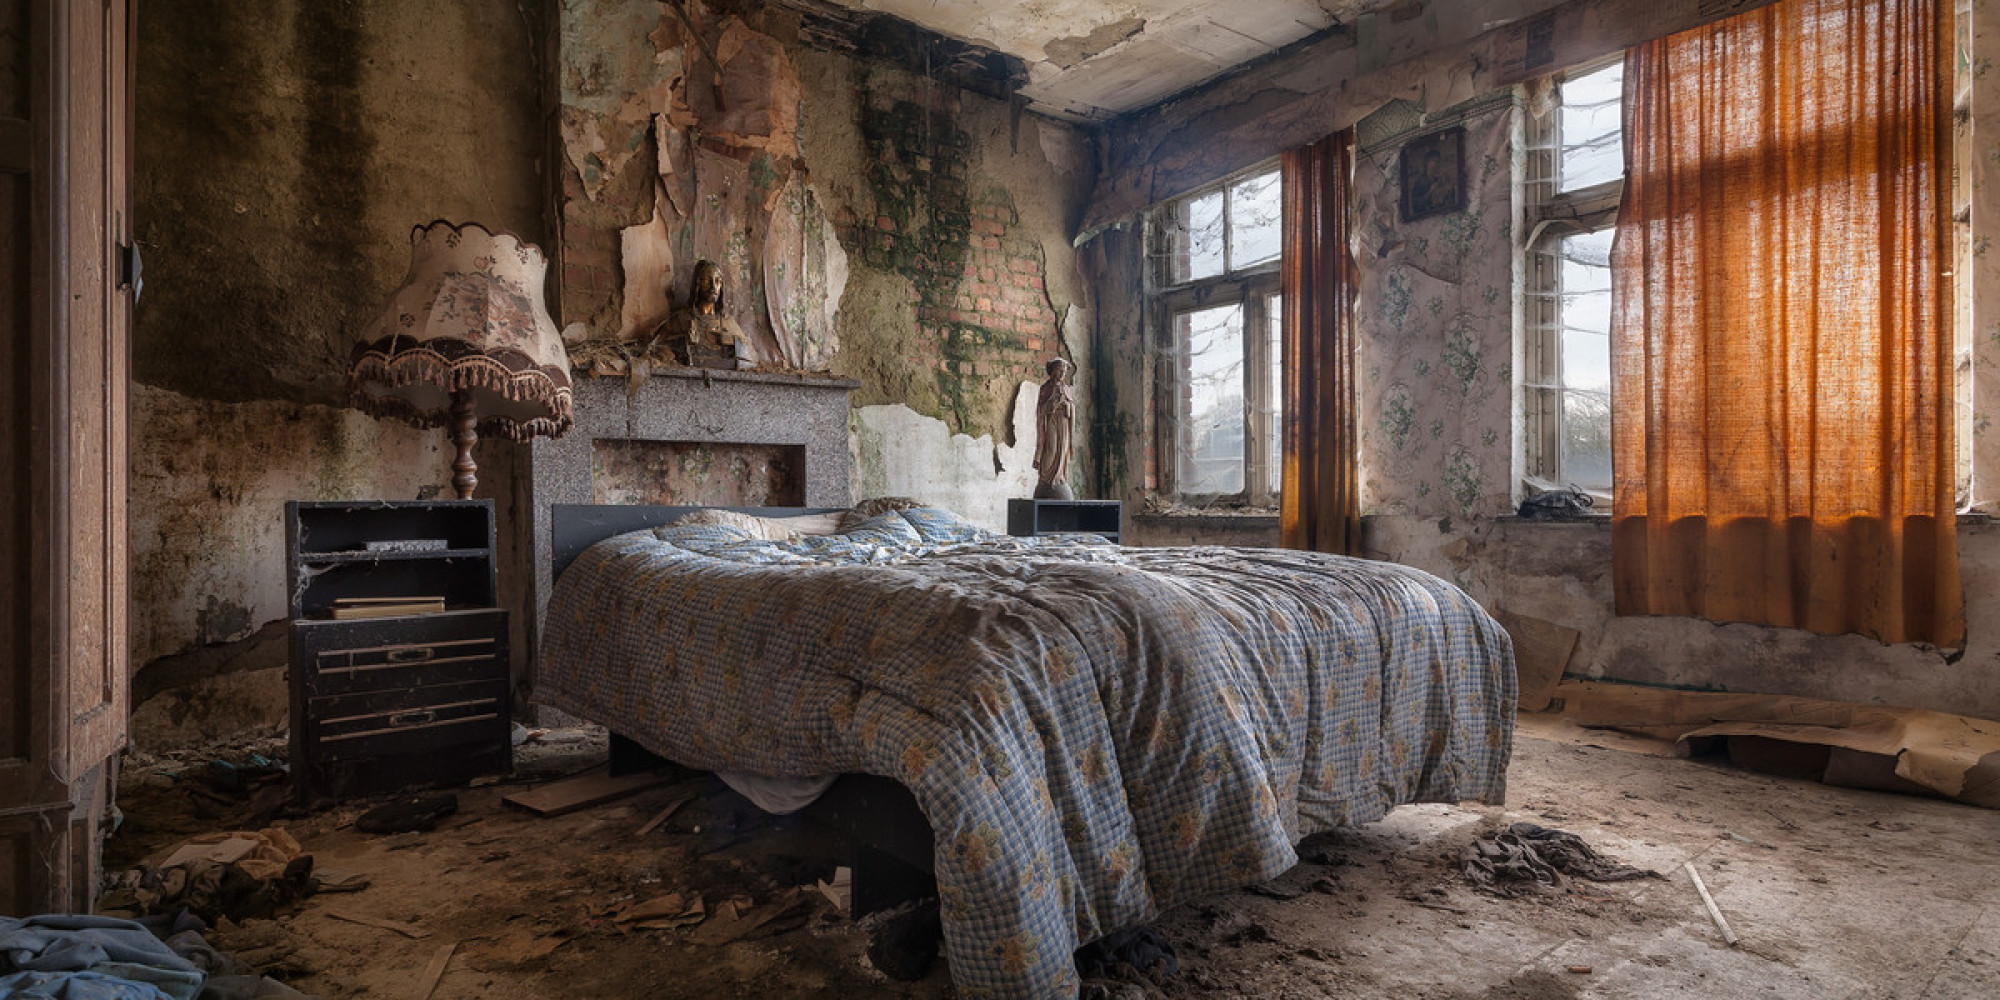 Stunning Abandoned Homes Are Surprisingly Full Of Life The